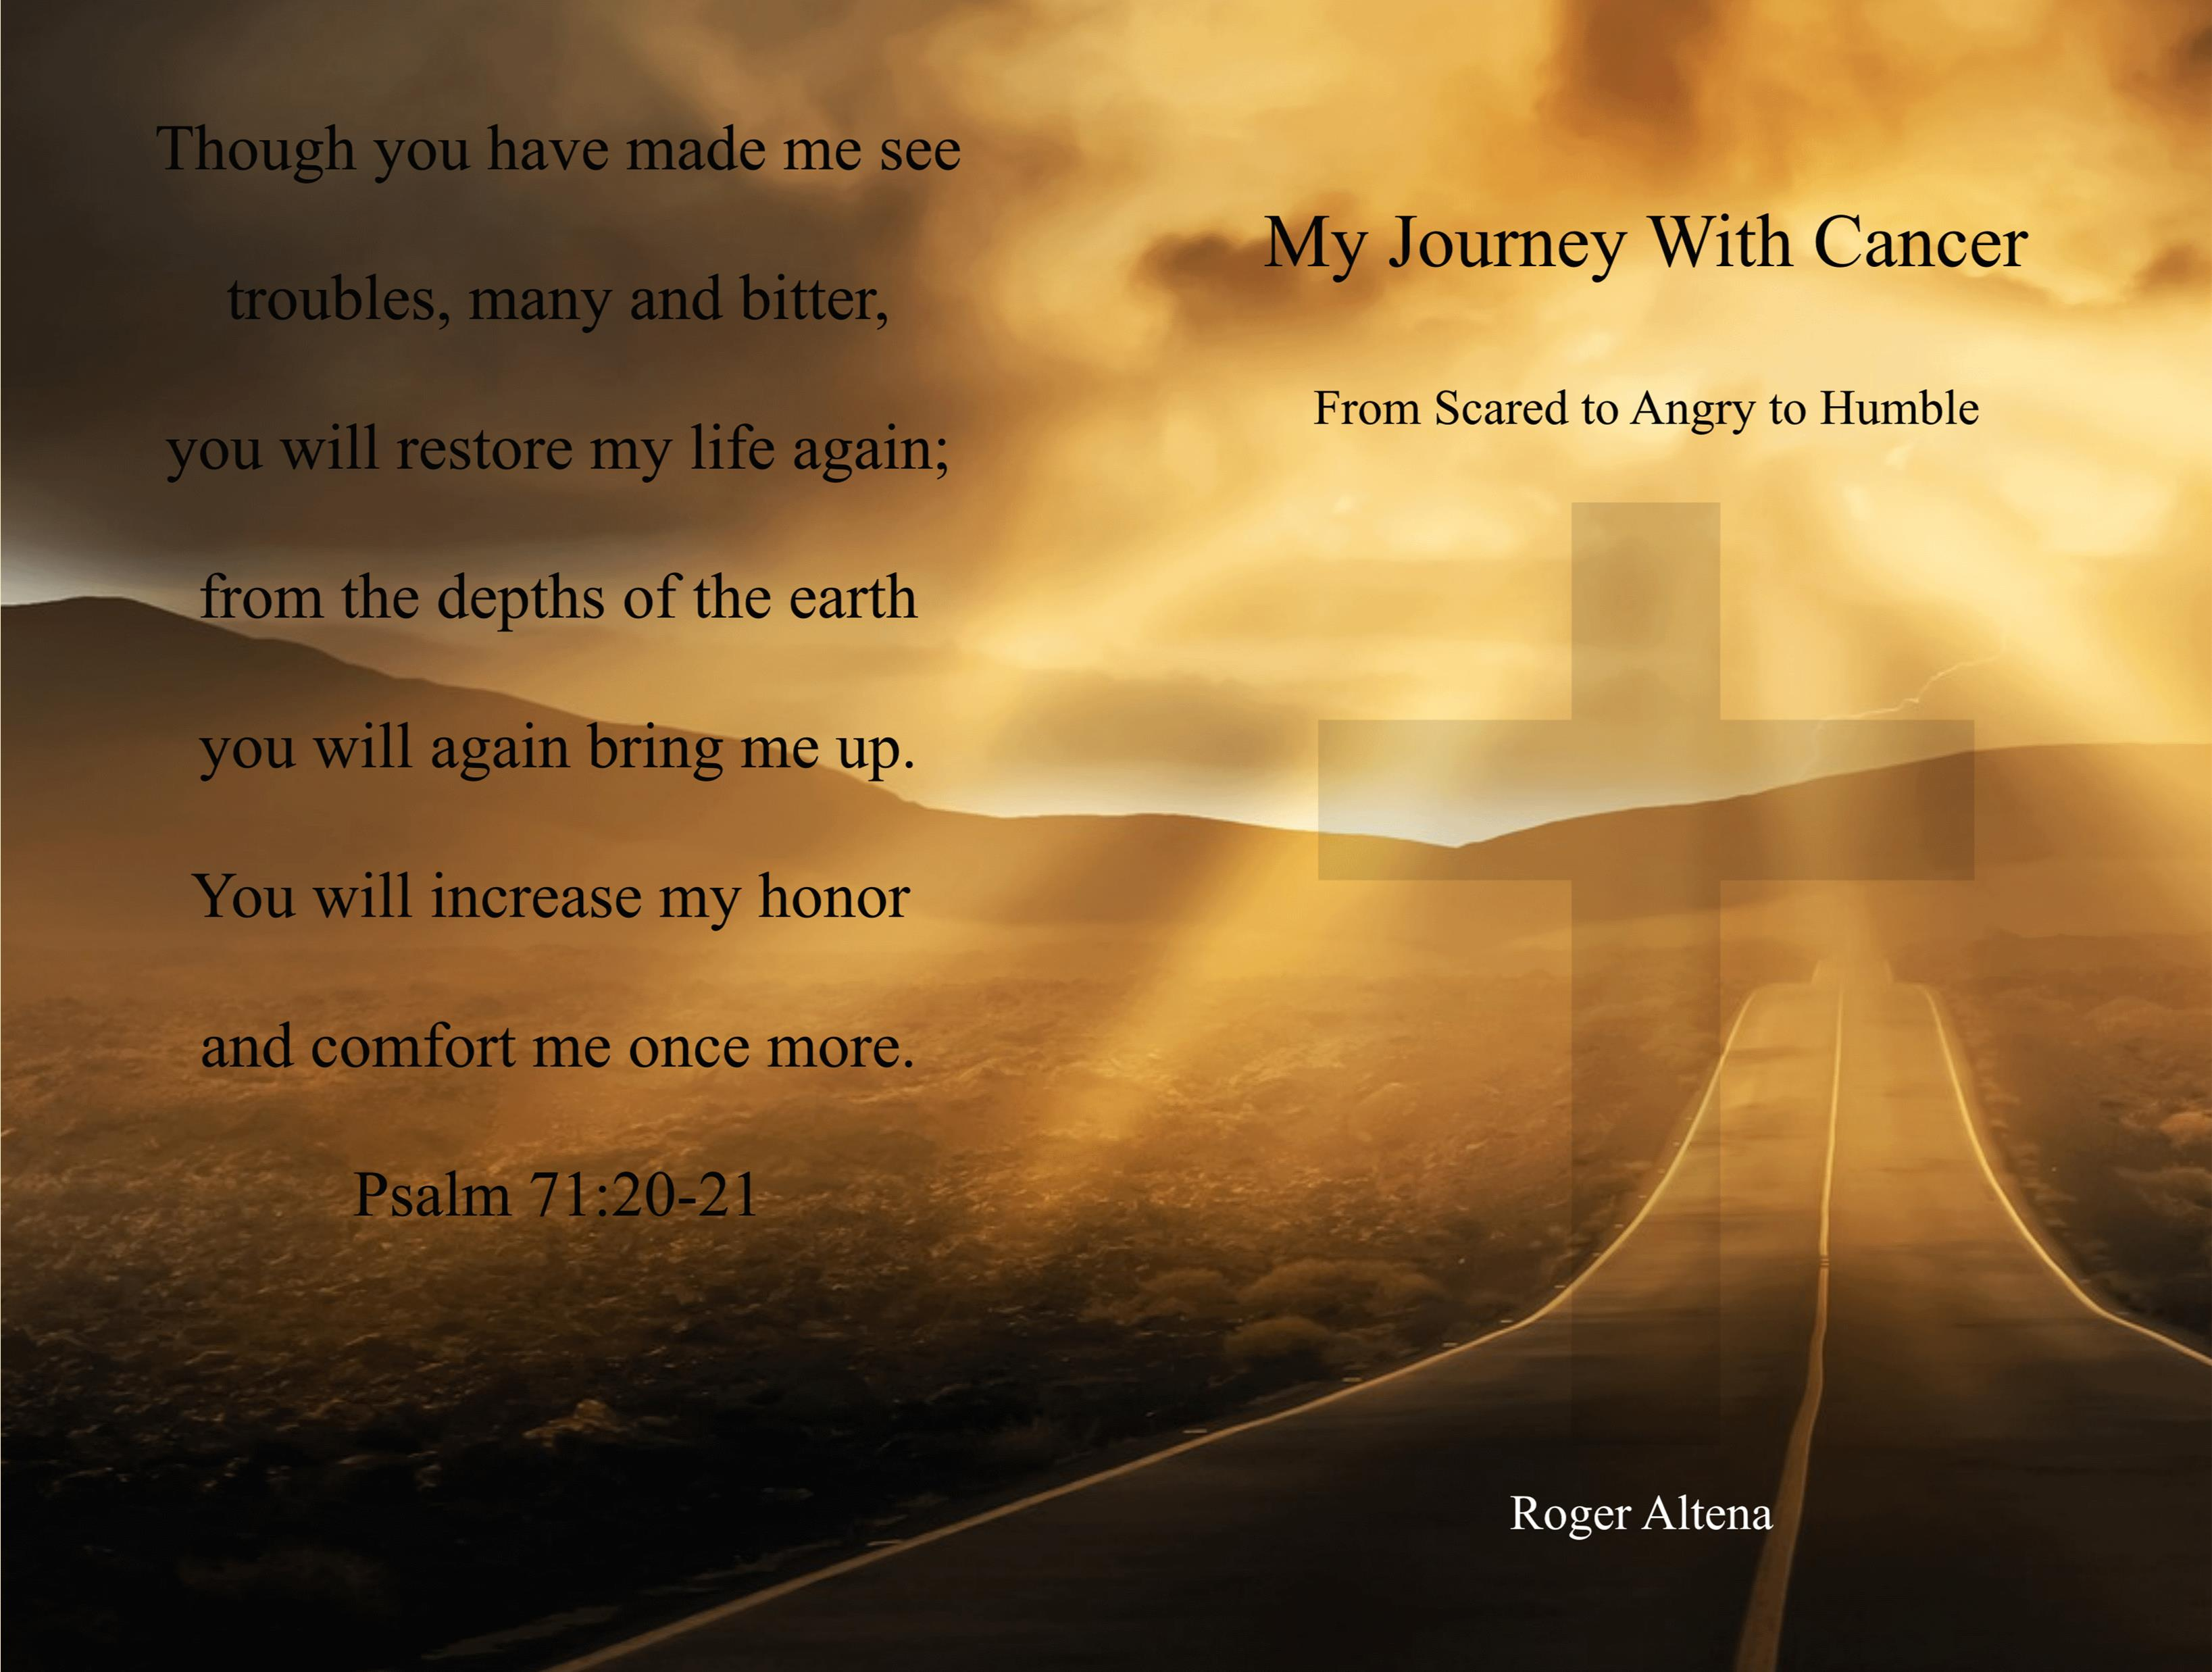 My Journey With Cancer cover image